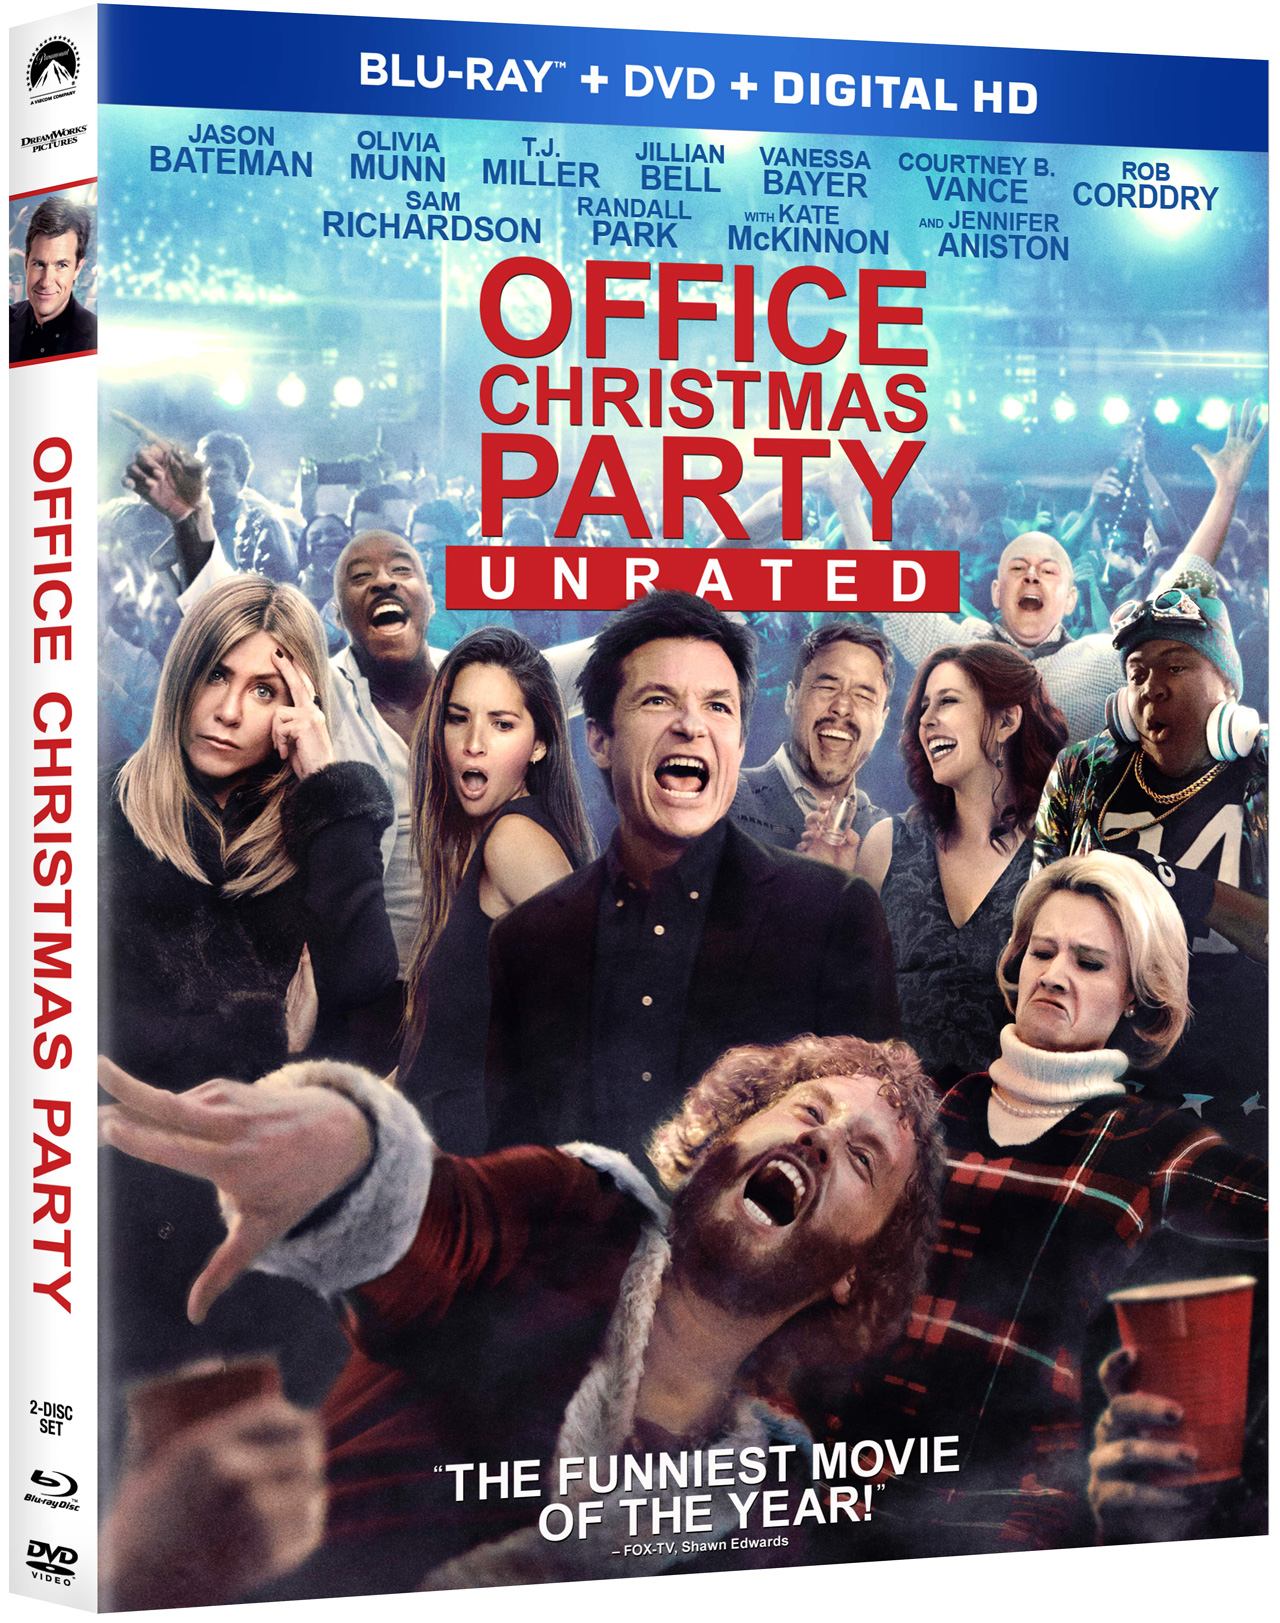 Office Christmas Party Trailer.Office Christmas Party Trailer Is Here To Cheer